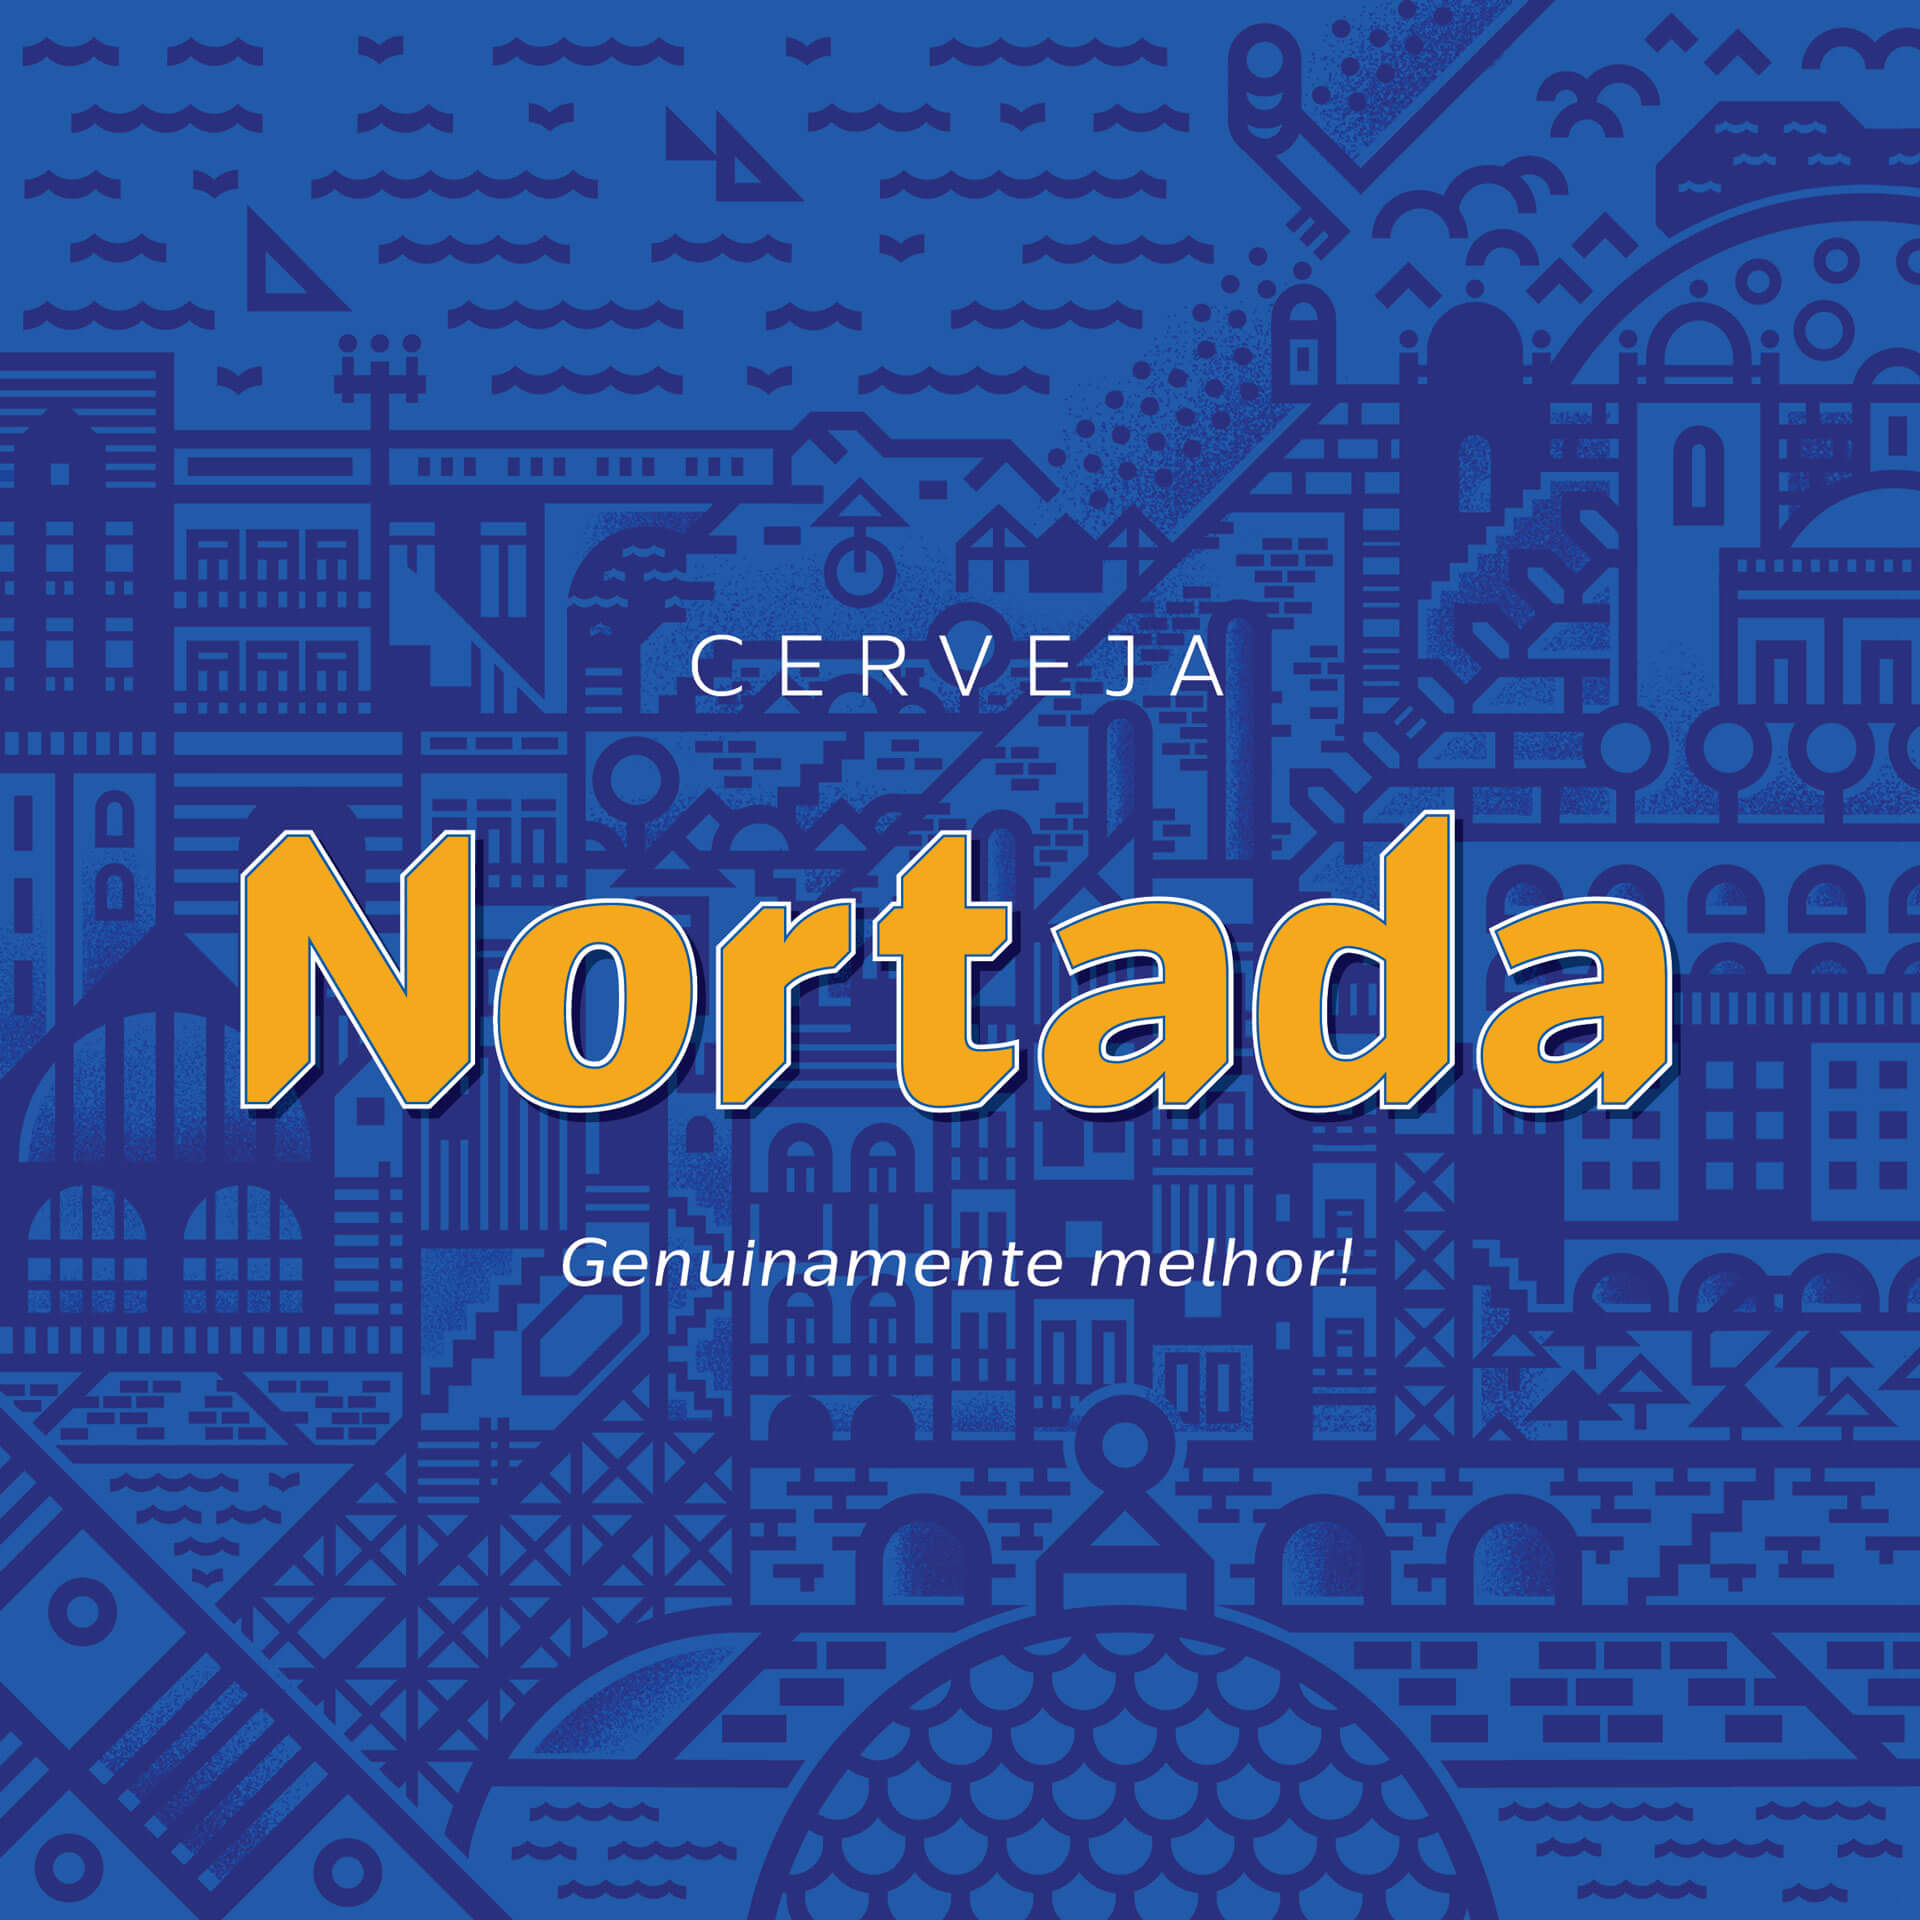 Cerveja Nortada Brand Poster Illustration